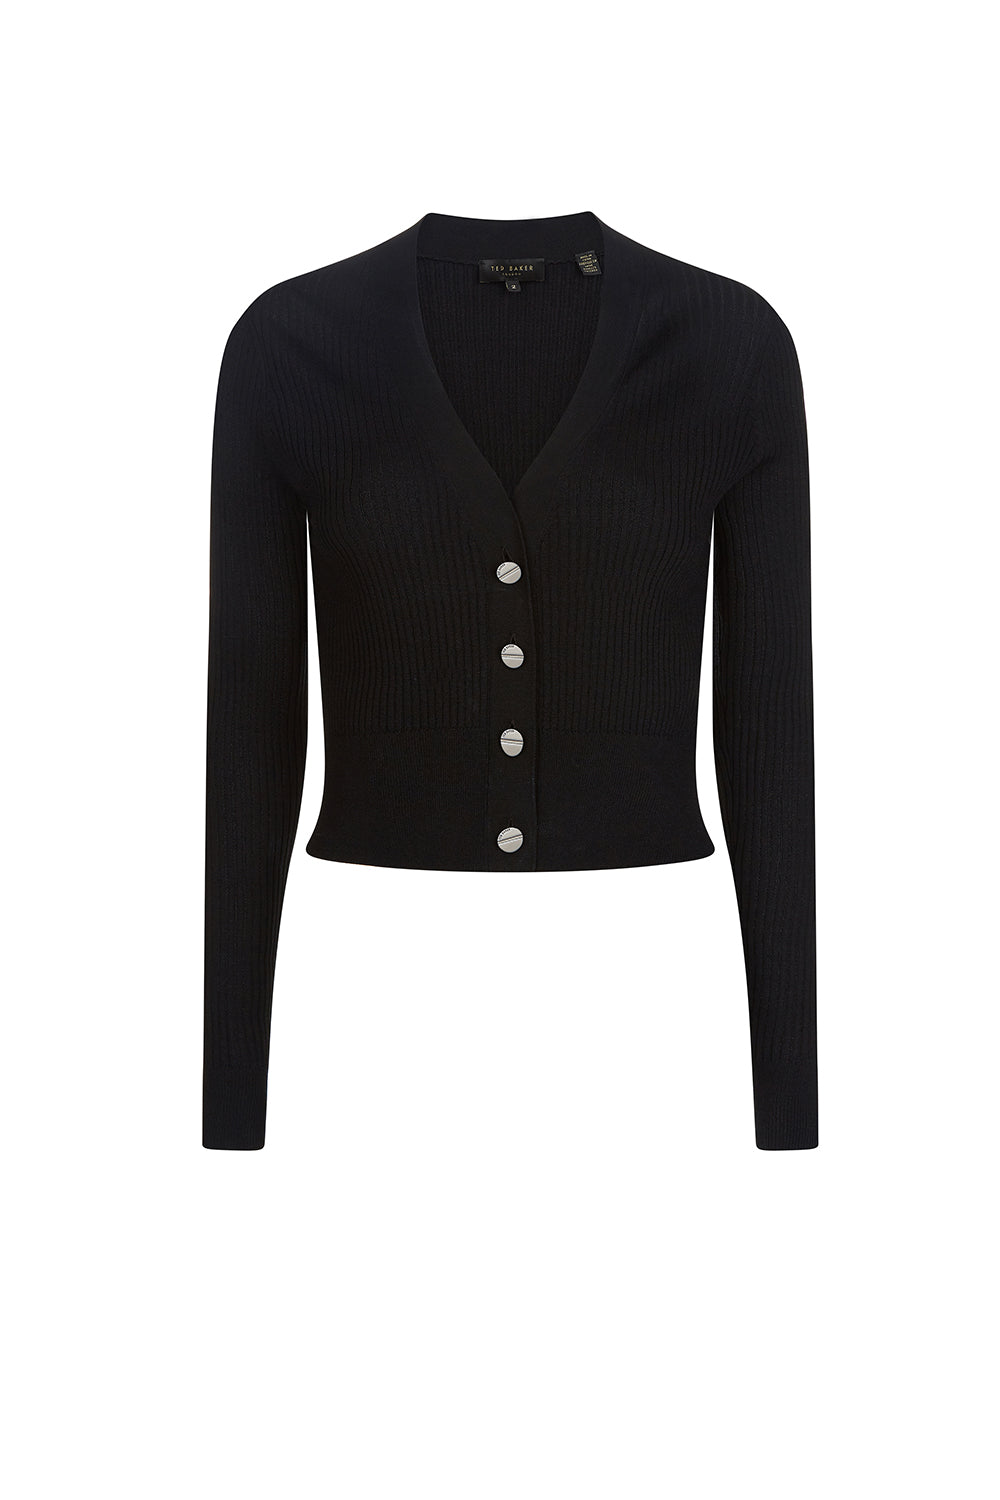 Ted Baker / Raeyaa Button Through Cardi / Black